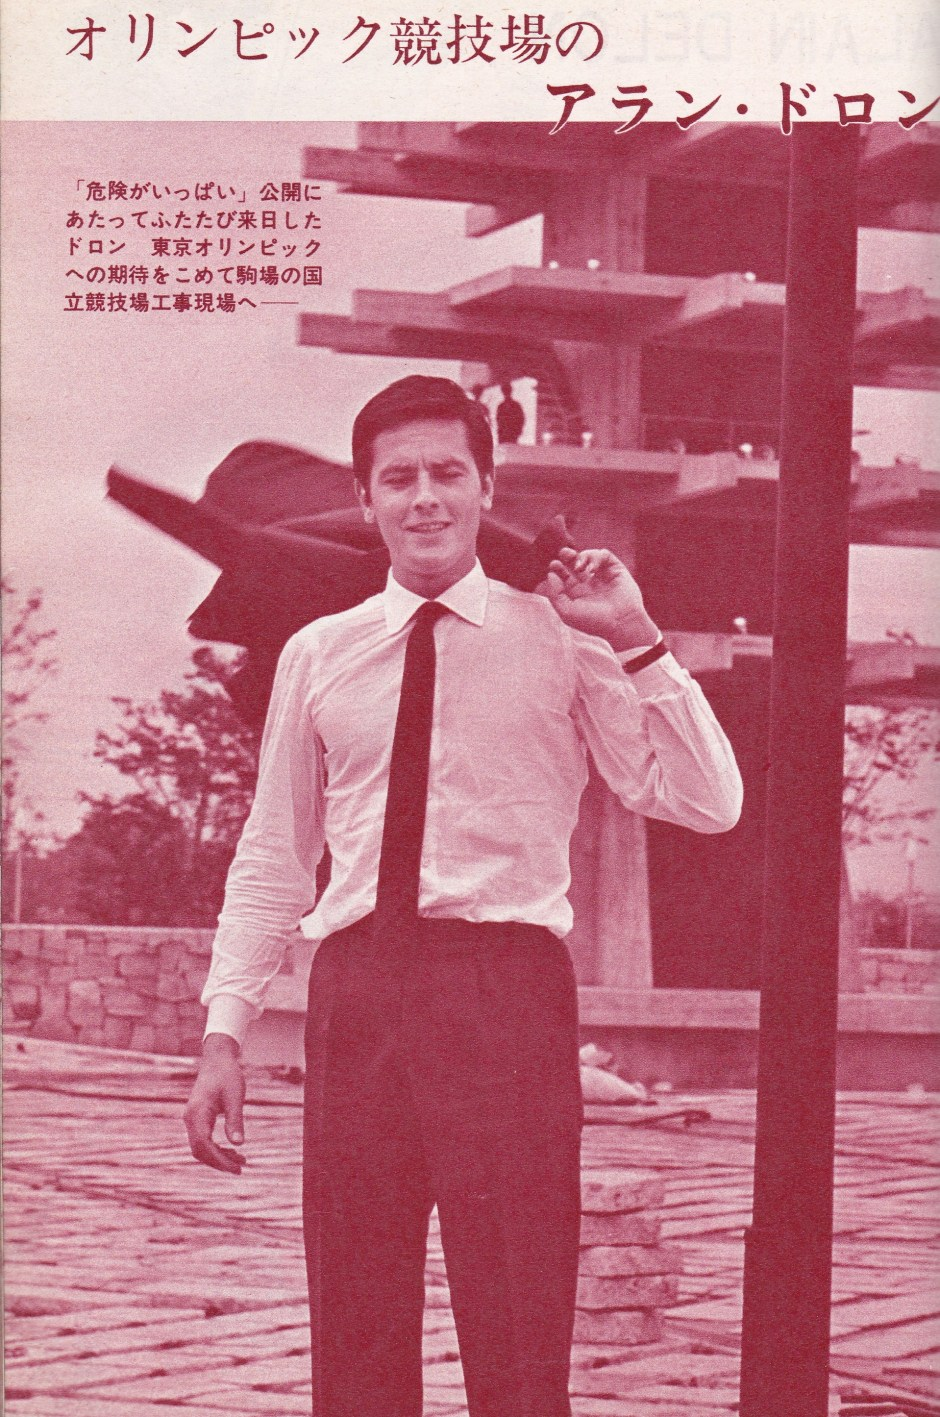 Eiga no Tomo_August 1964_Alain Delon at Komazawa